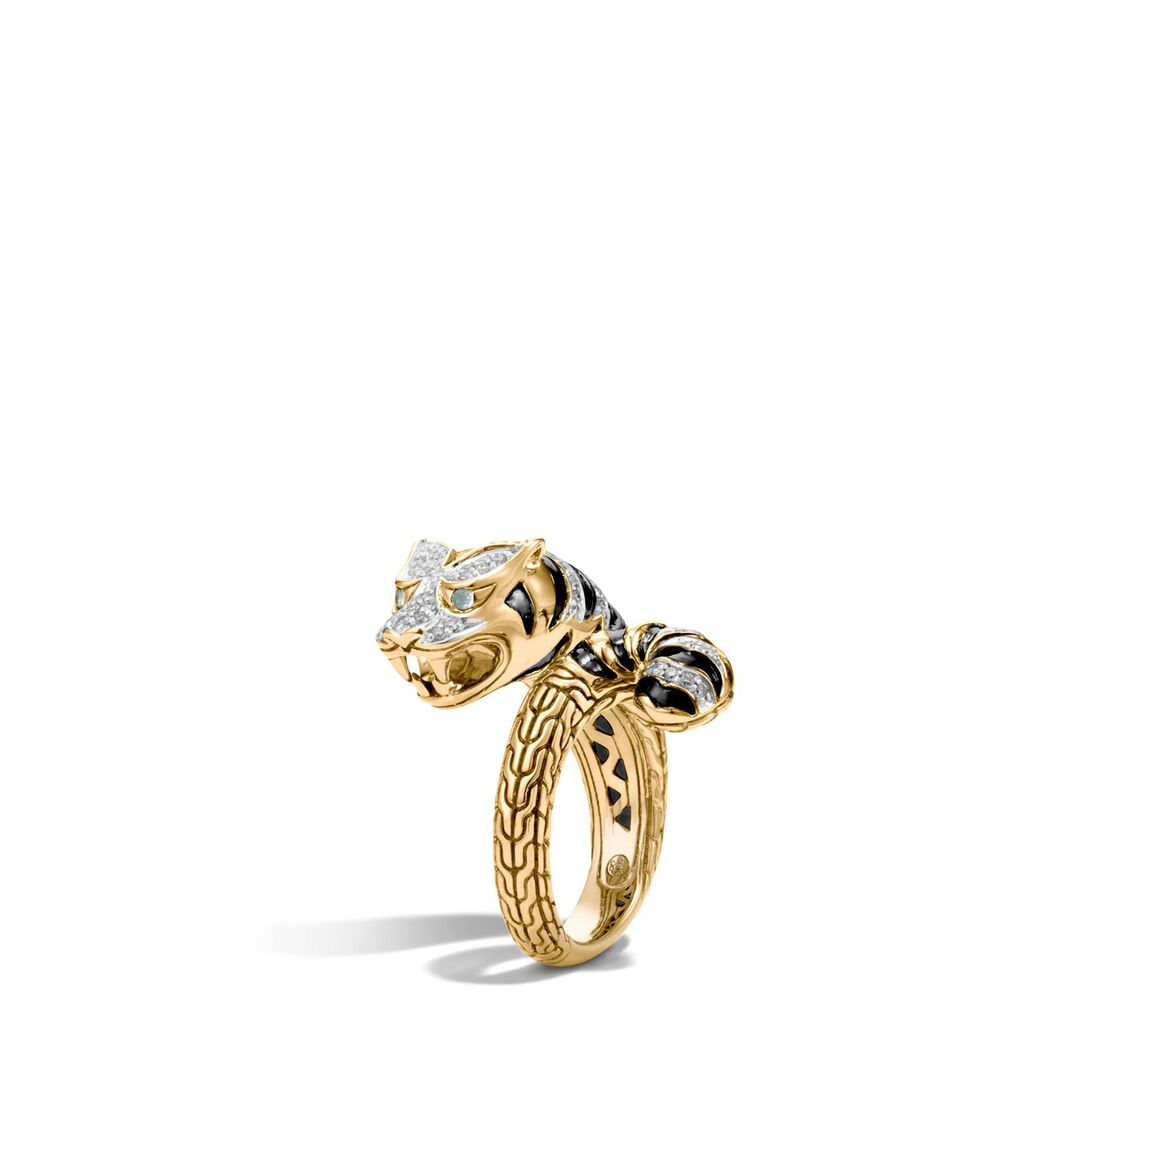 Legends Macan Bypass Ring in 18K Gold with Diamonds